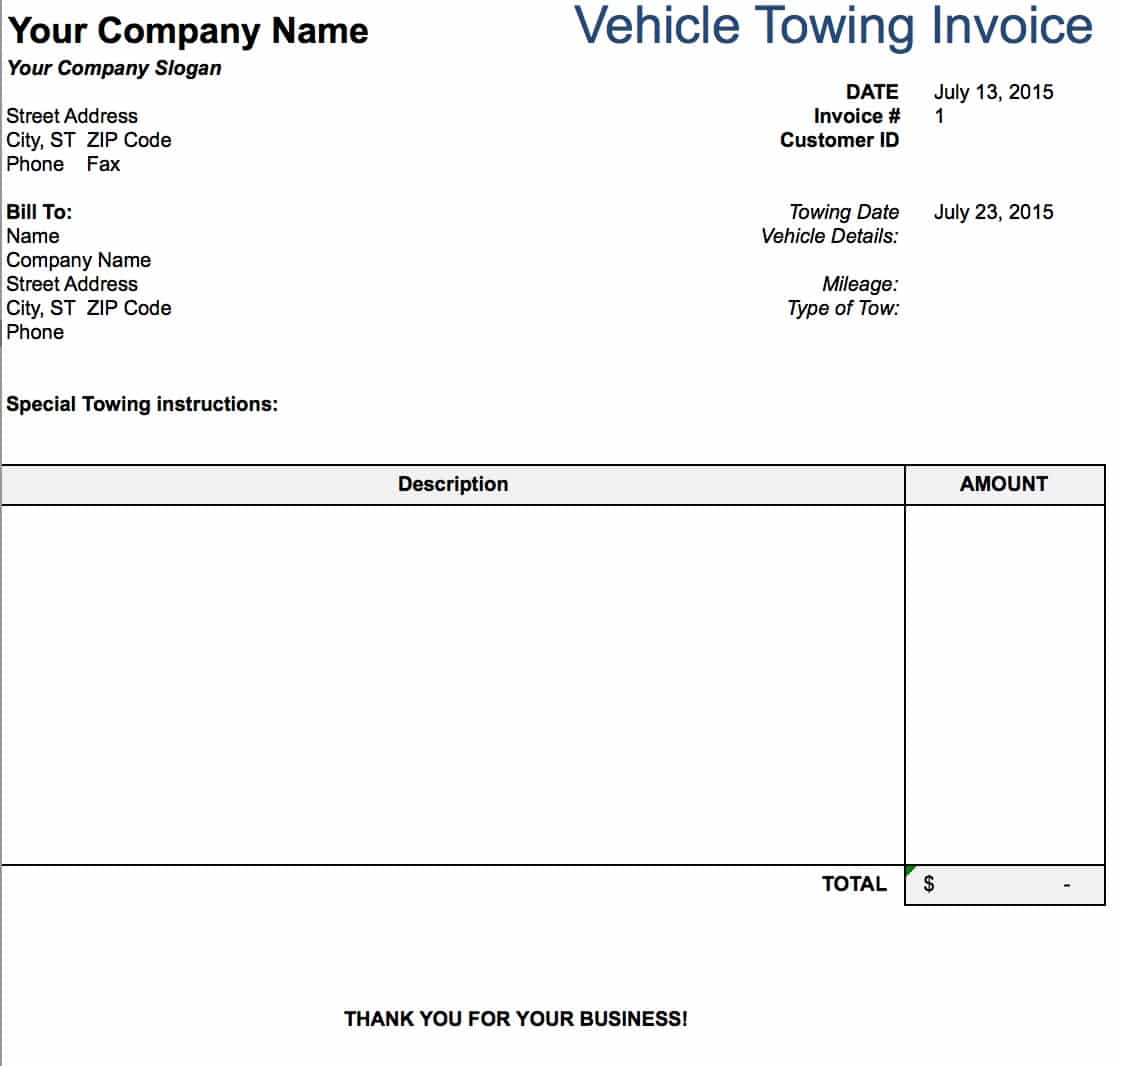 Free Tow Service Invoice Template Excel PDF Word Doc - Invoice examples in word for service business